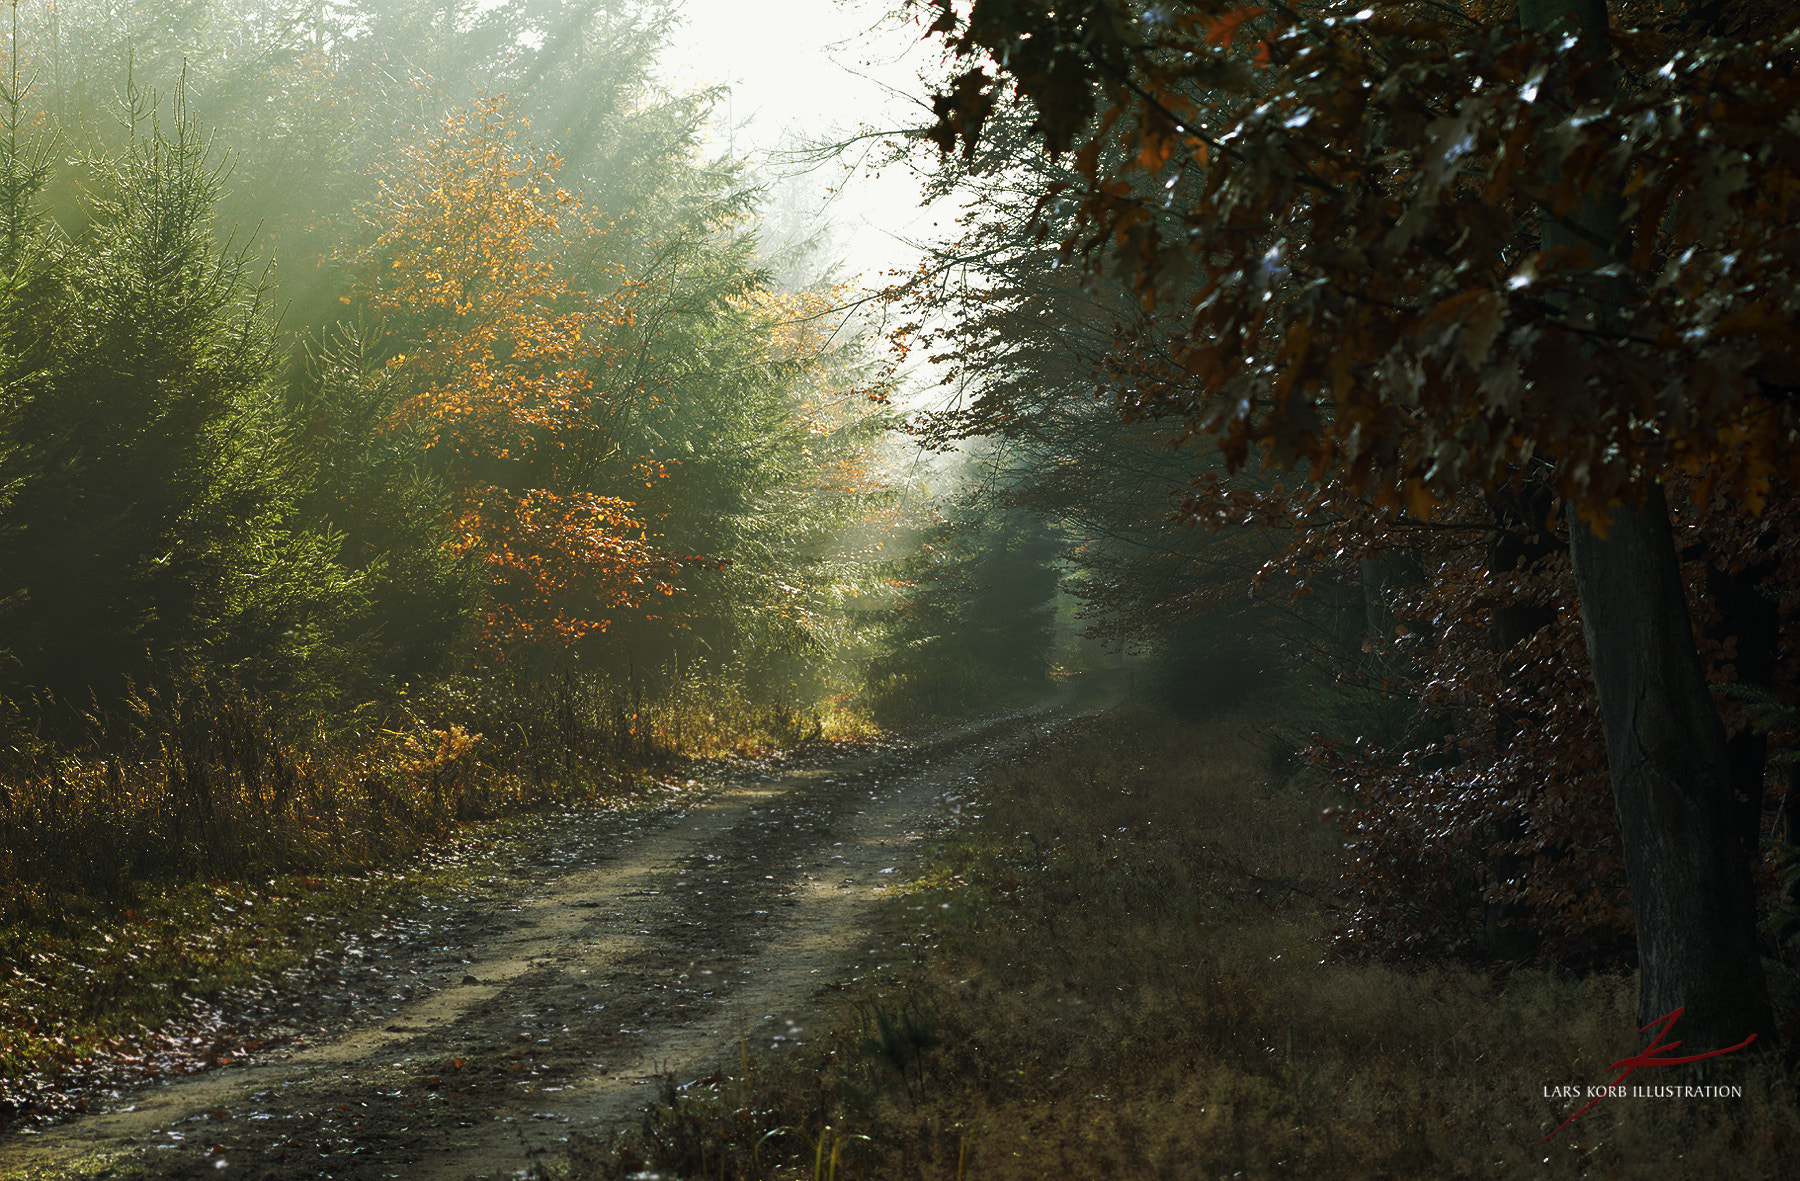 Photograph Ye Olde Trail by Lars Korb on 500px